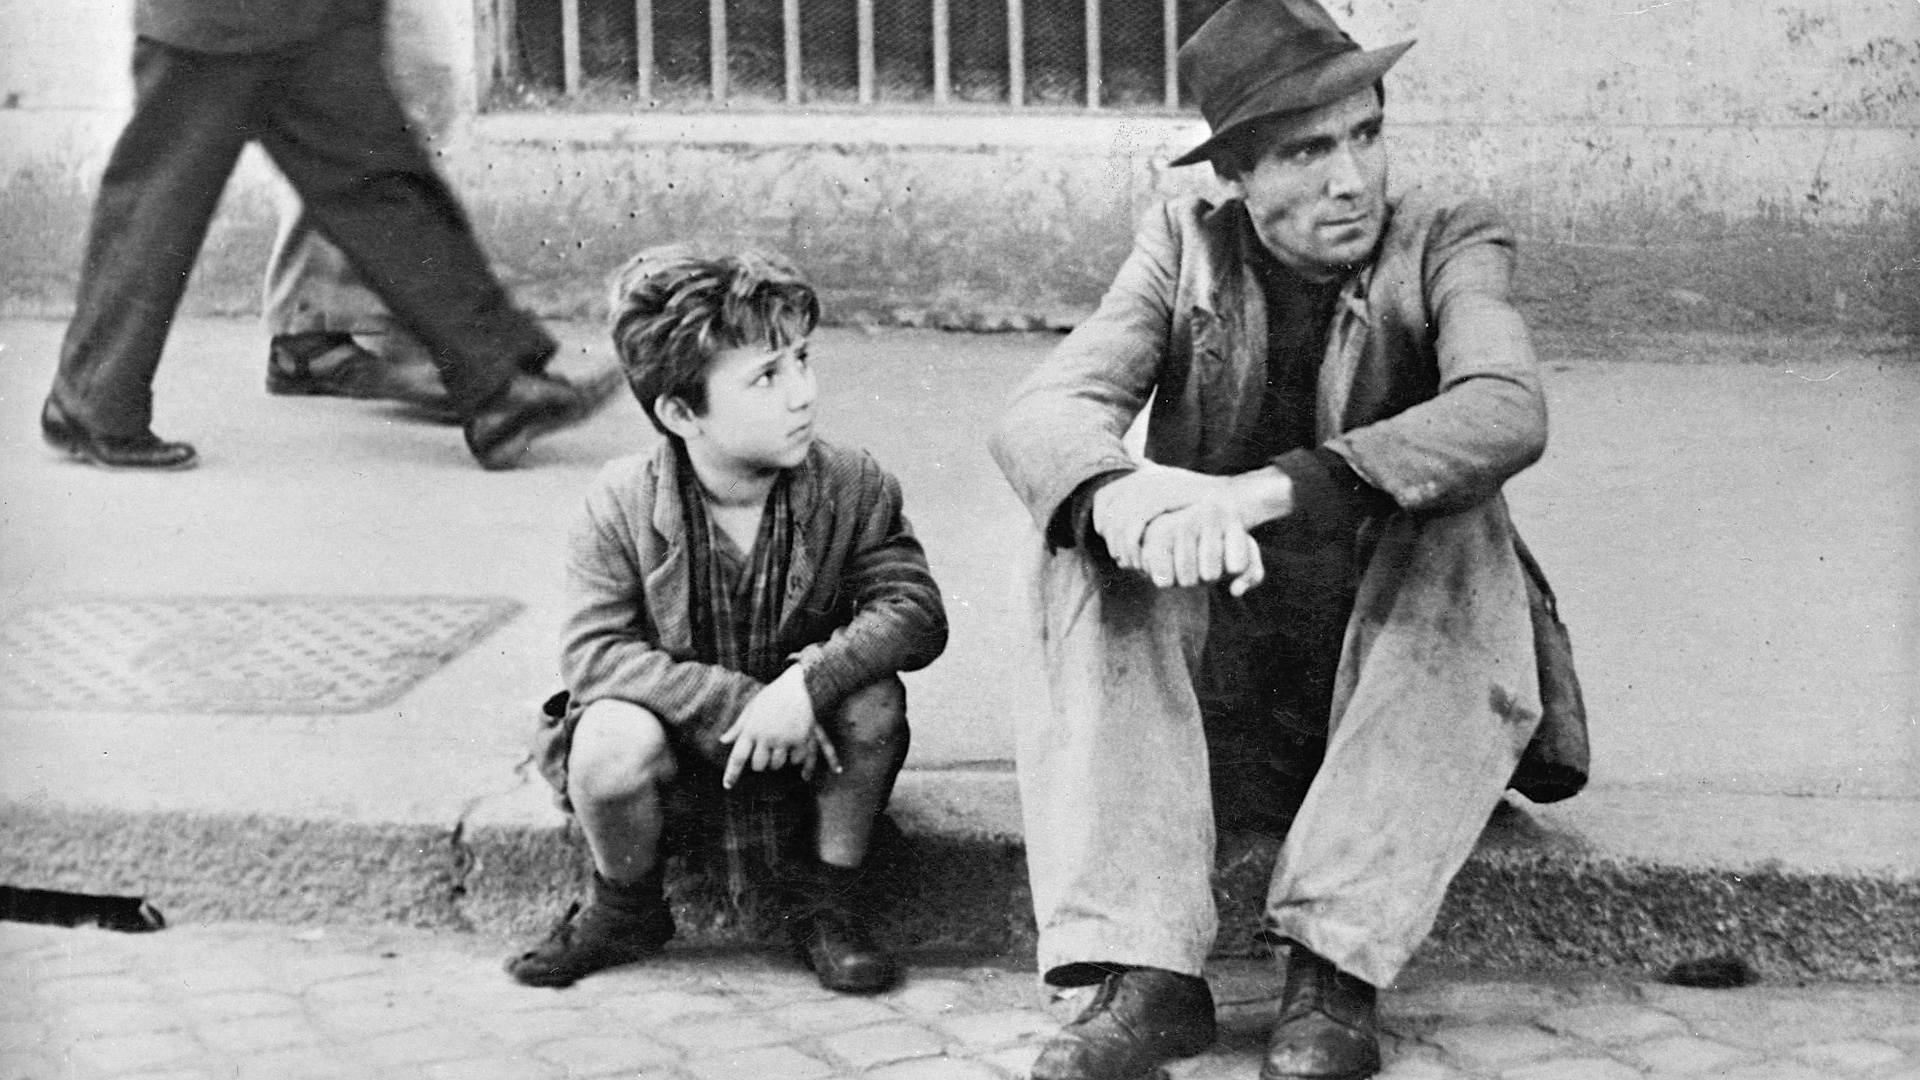 Bicycle Thieves (Vittorio De Sica)